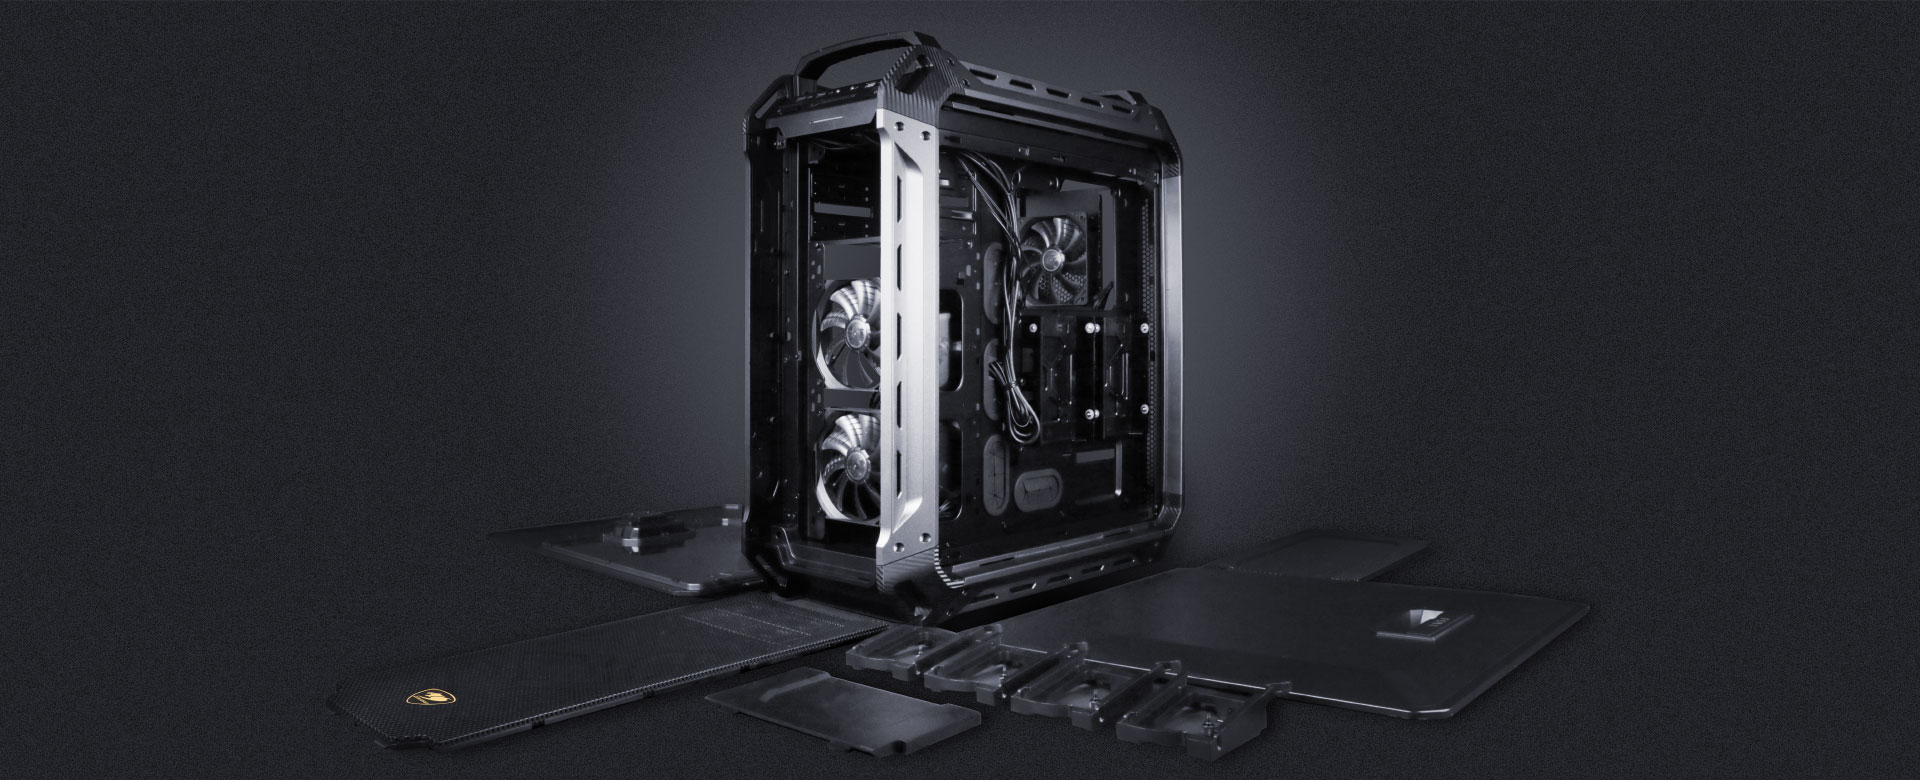 Cougar Panzer Max The Ultimate Full Tower Gaming Case Corsair Cases Wiring Diagrams Superior Expandability